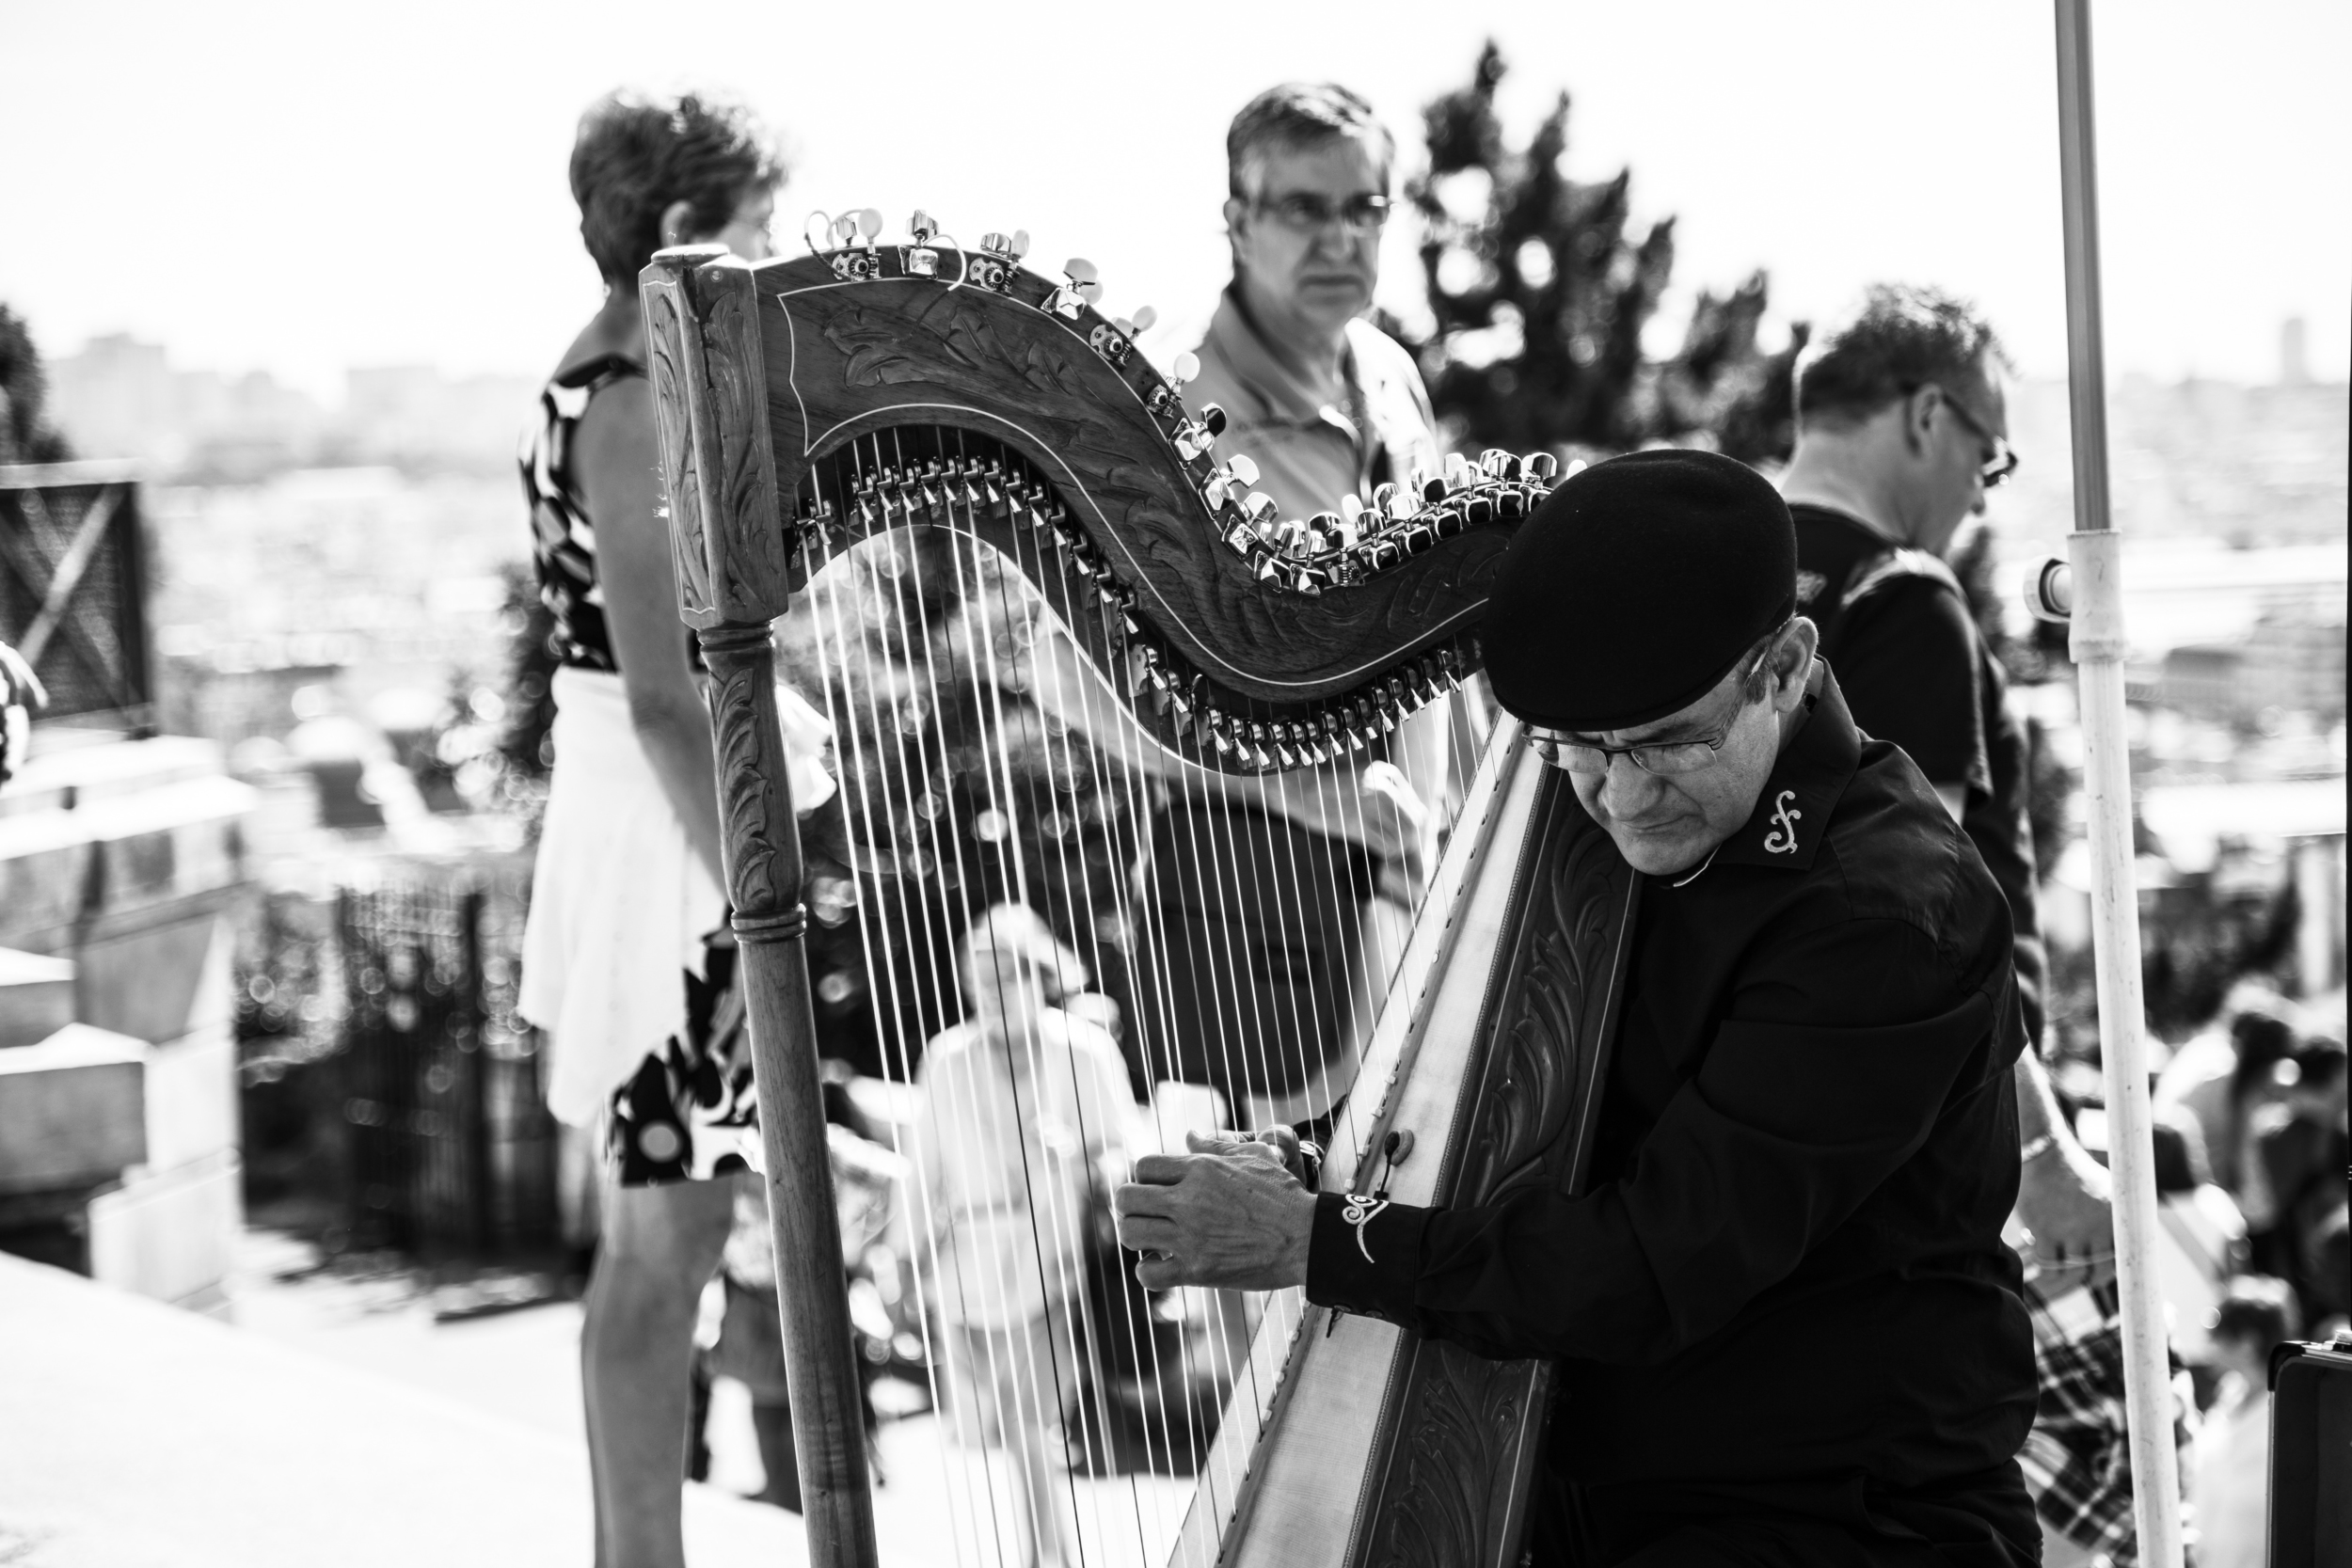 A local man playing a harp